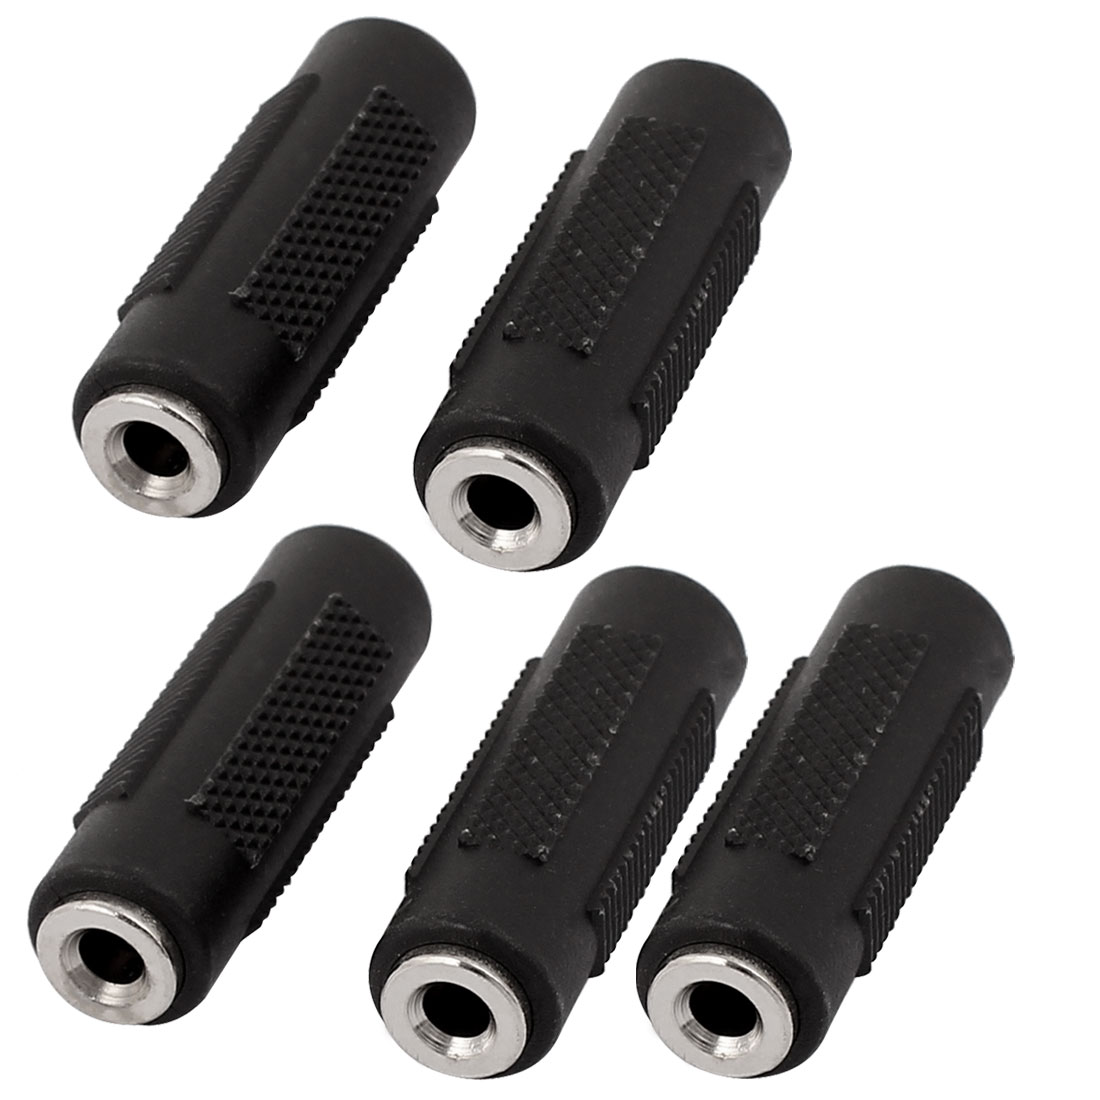 3.5mm Female to Female F/F Audio Stereo Adapter Connector Coupler Extension 5Pcs